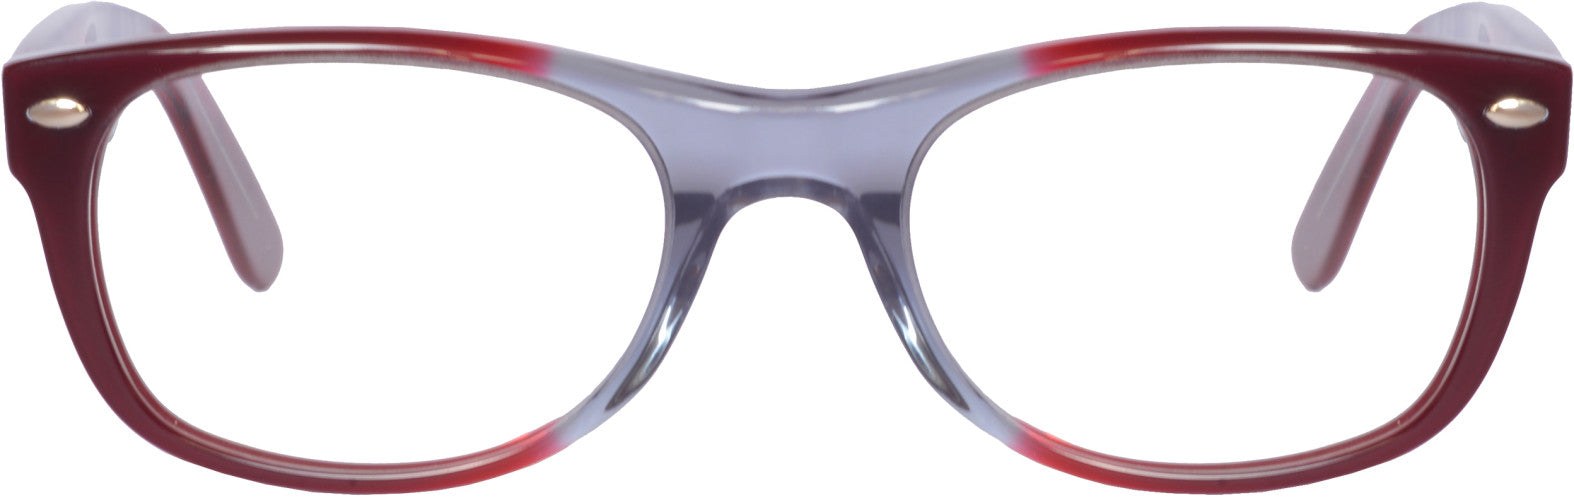 Ray Ban Eyeglasses RB5184 5517 RX-ABLE